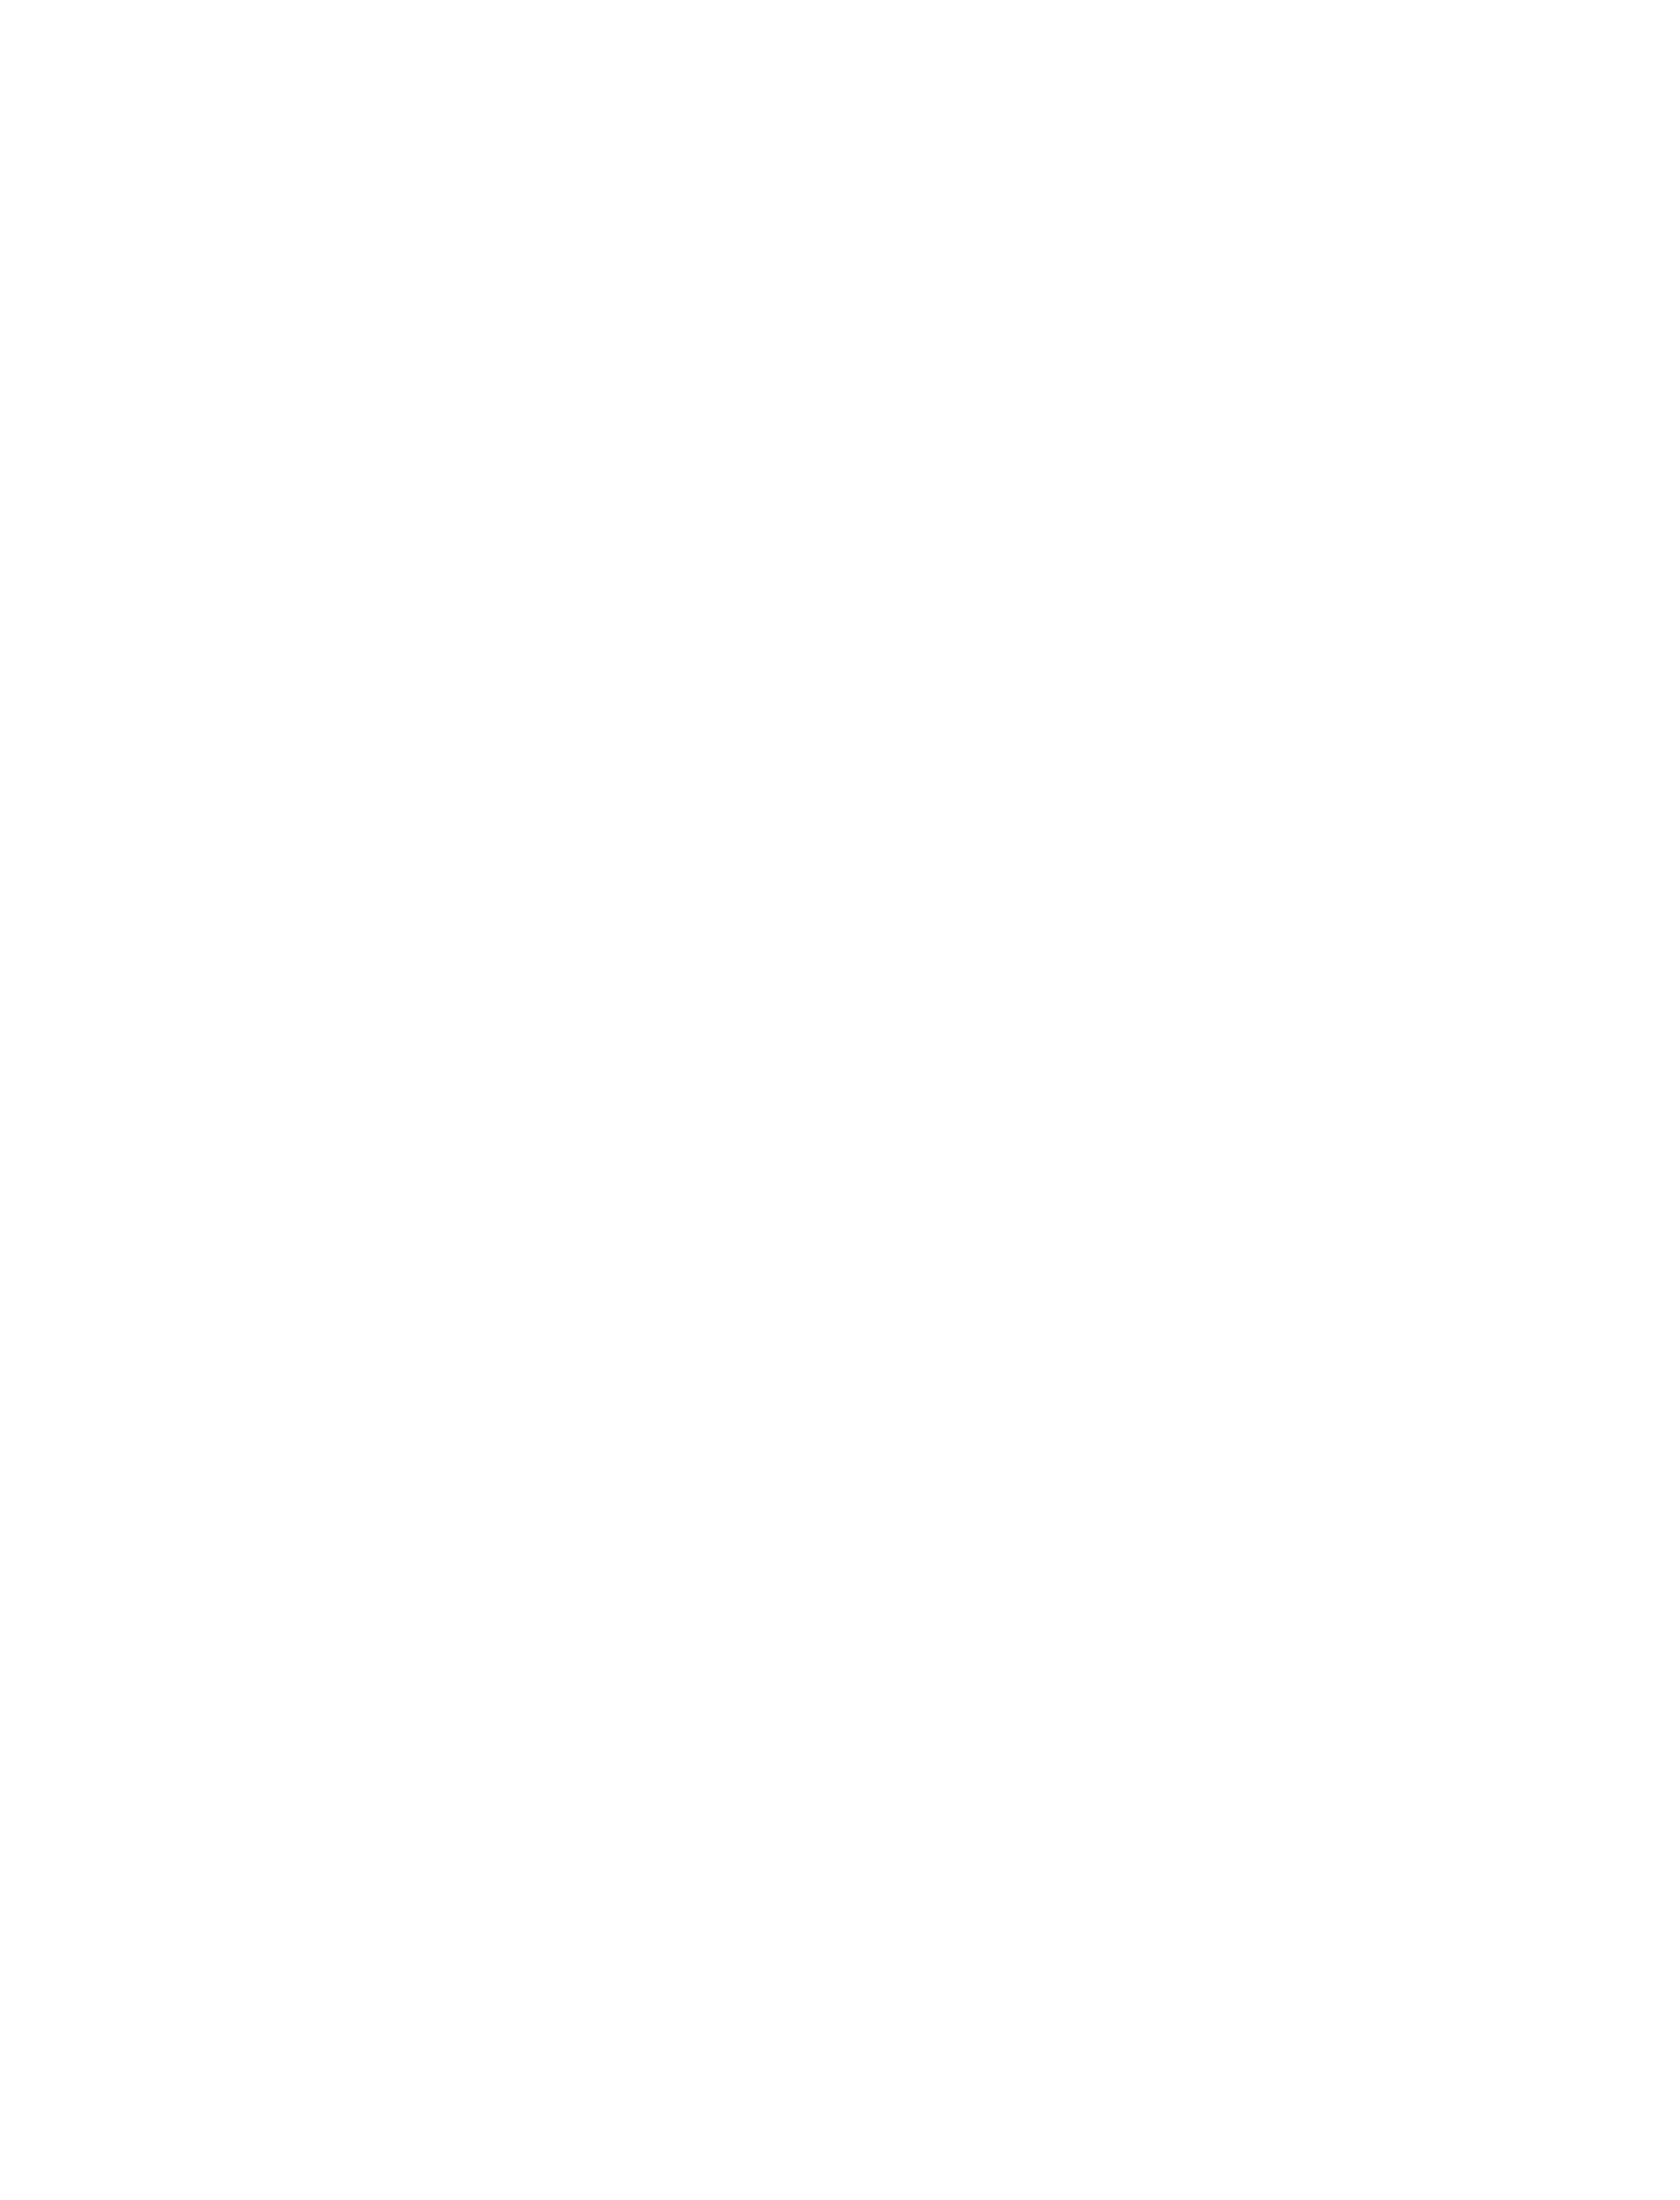 Wildfire Strong